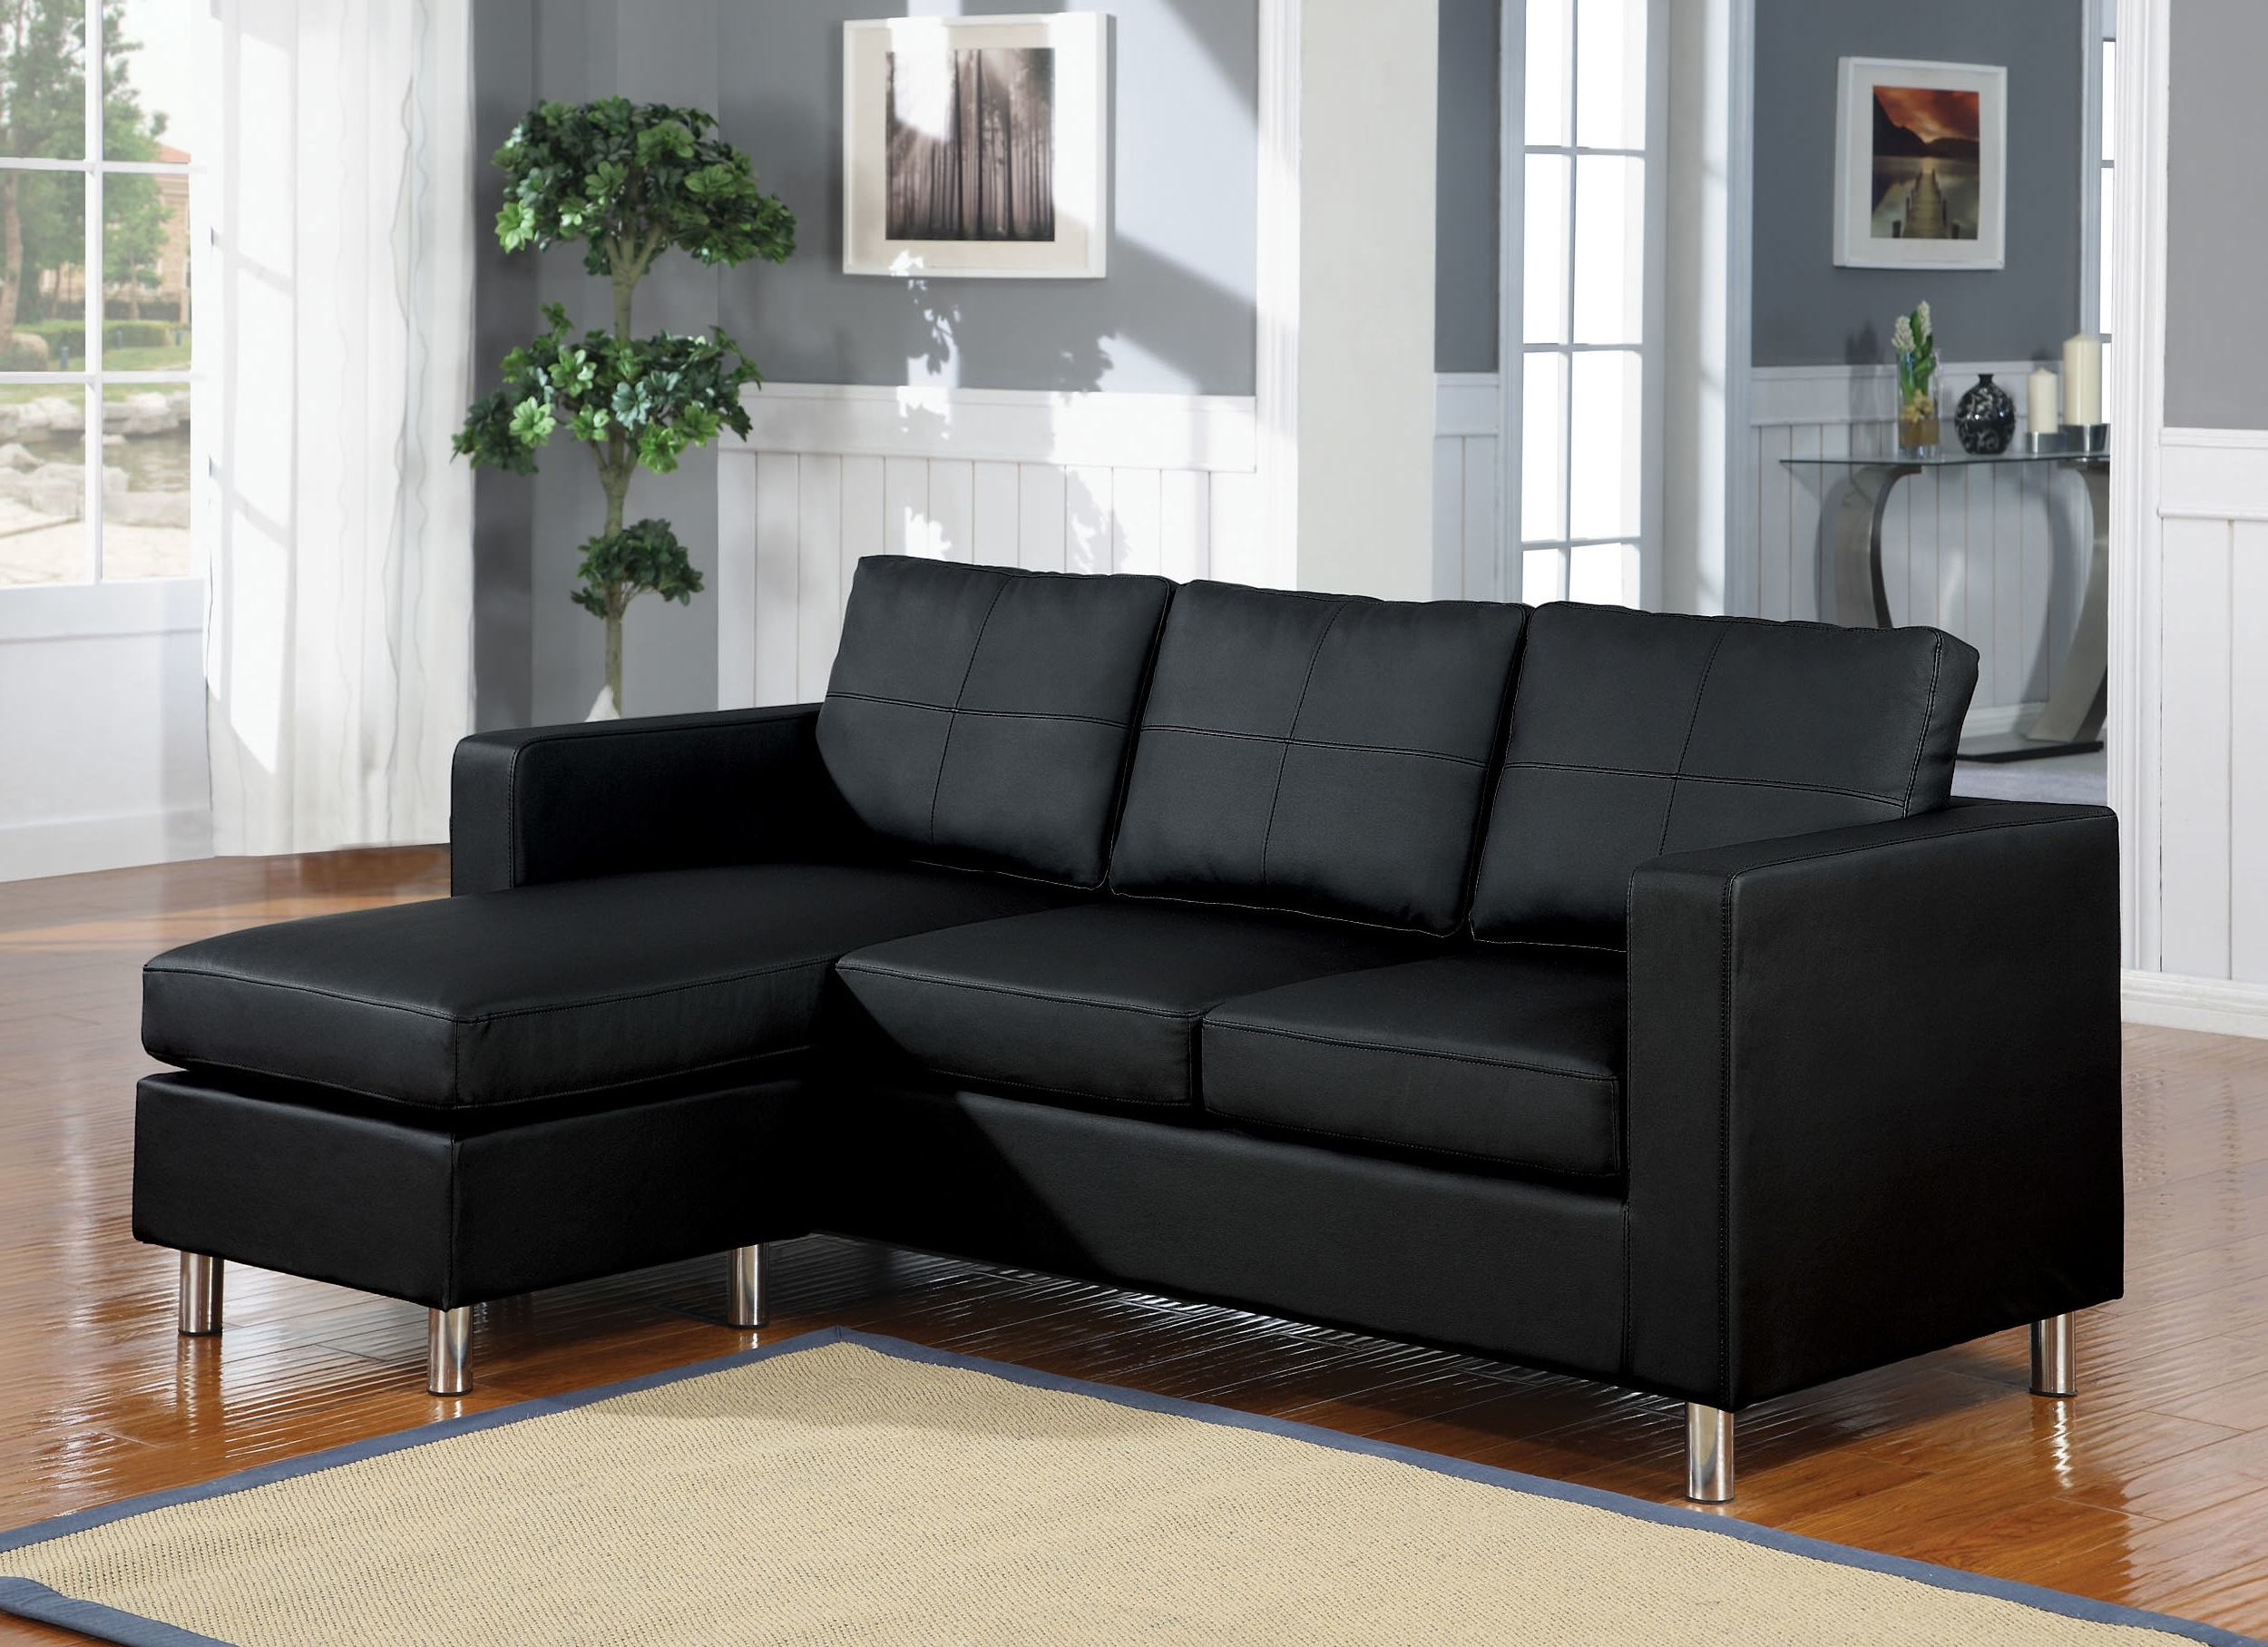 Design In Leather Modular Sectional Sofas (View 3 of 15)